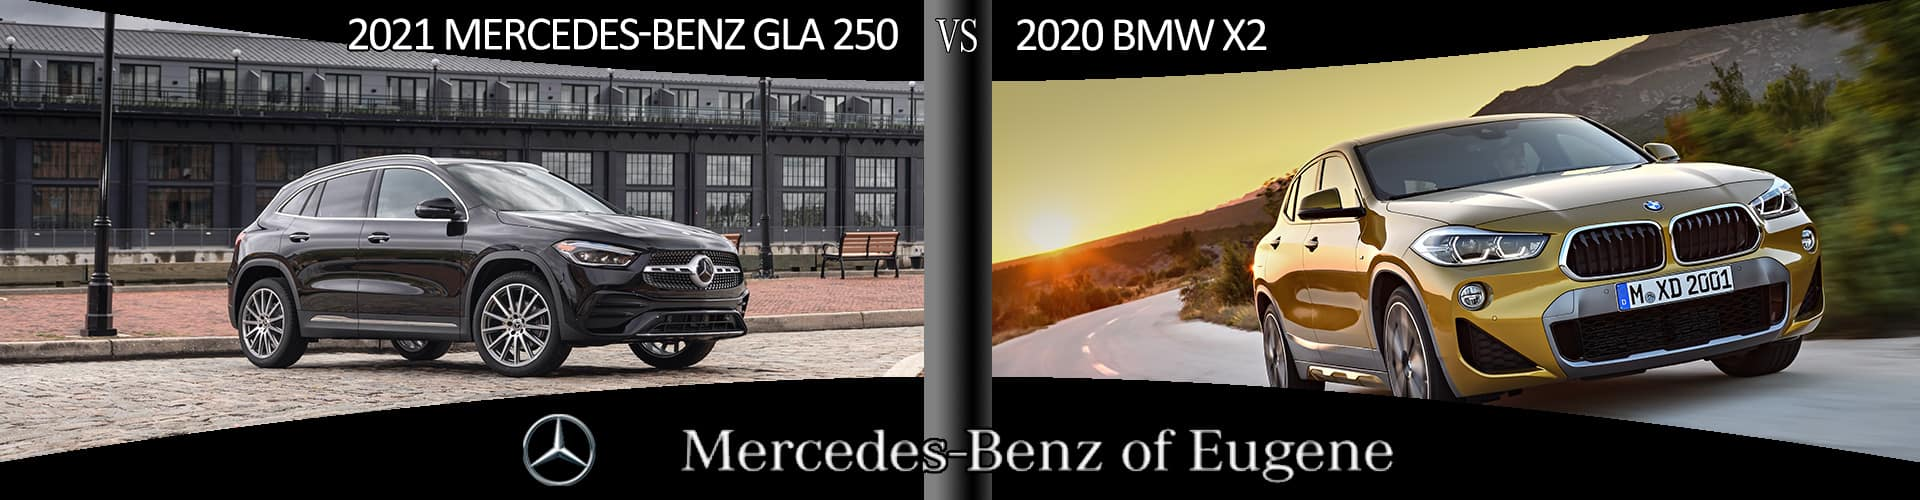 Compare and see how the 2021 Mercedes-Benz GLA 250 is a better choice than the BMW X2